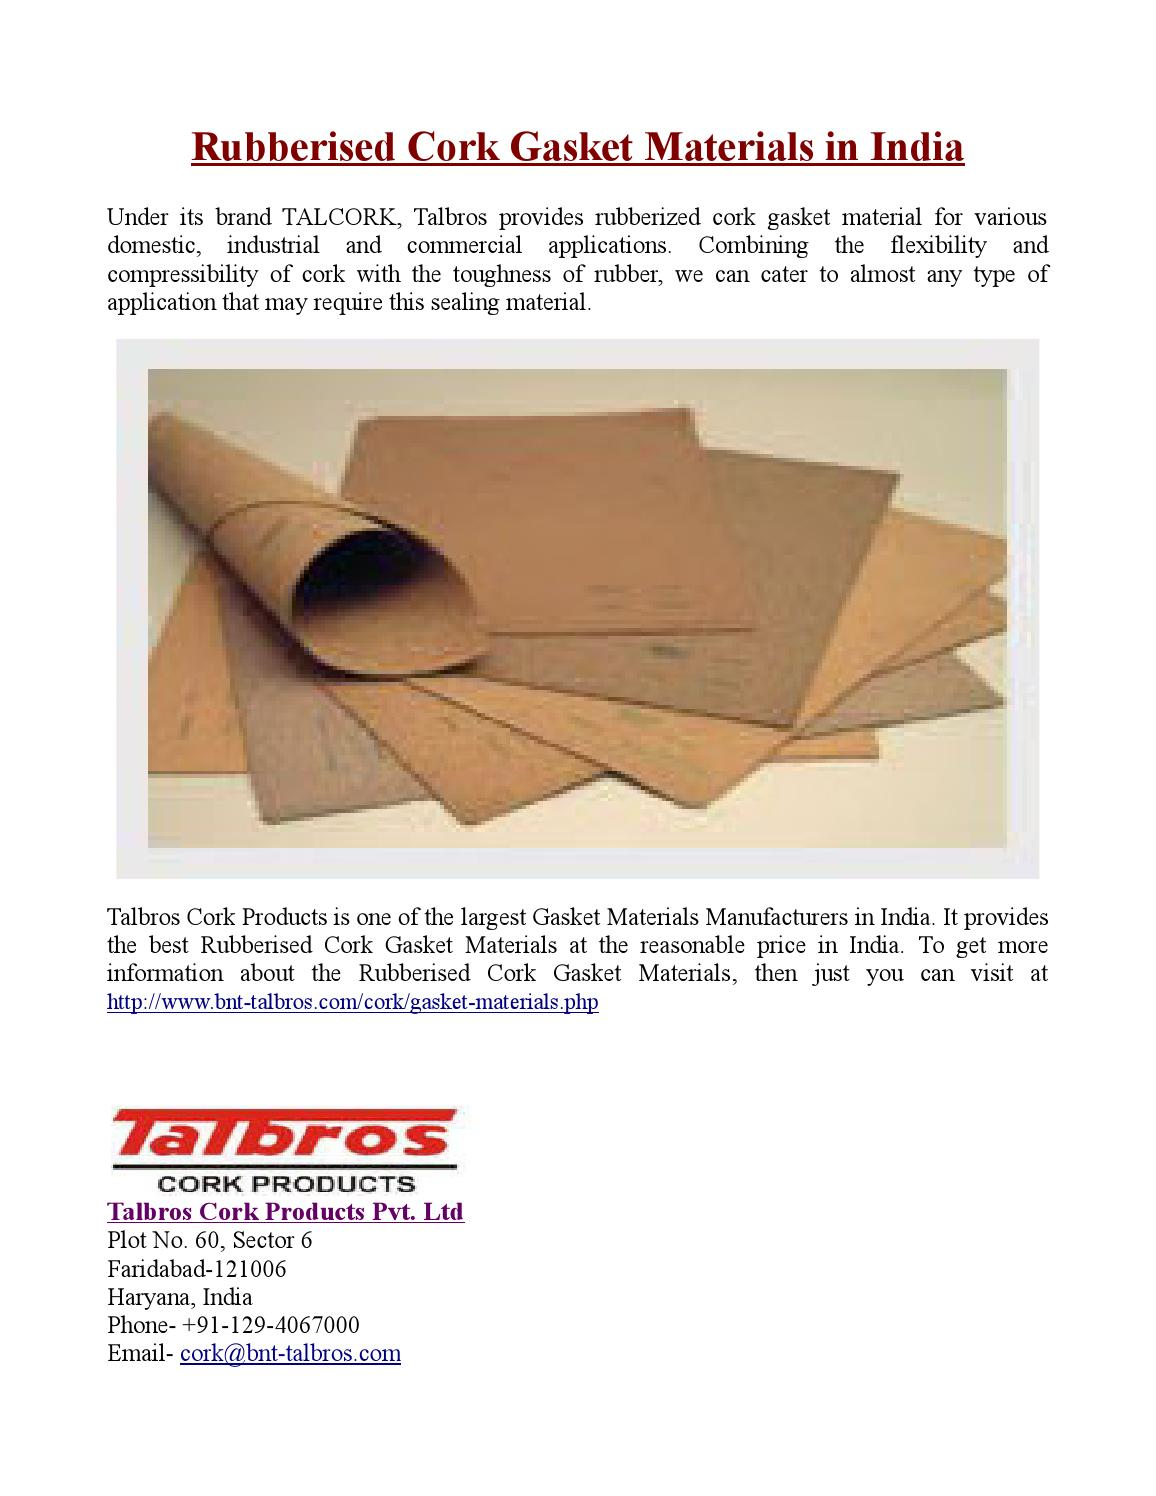 Rubberised Cork Gasket Materials in India by Crazzy Paul - issuu